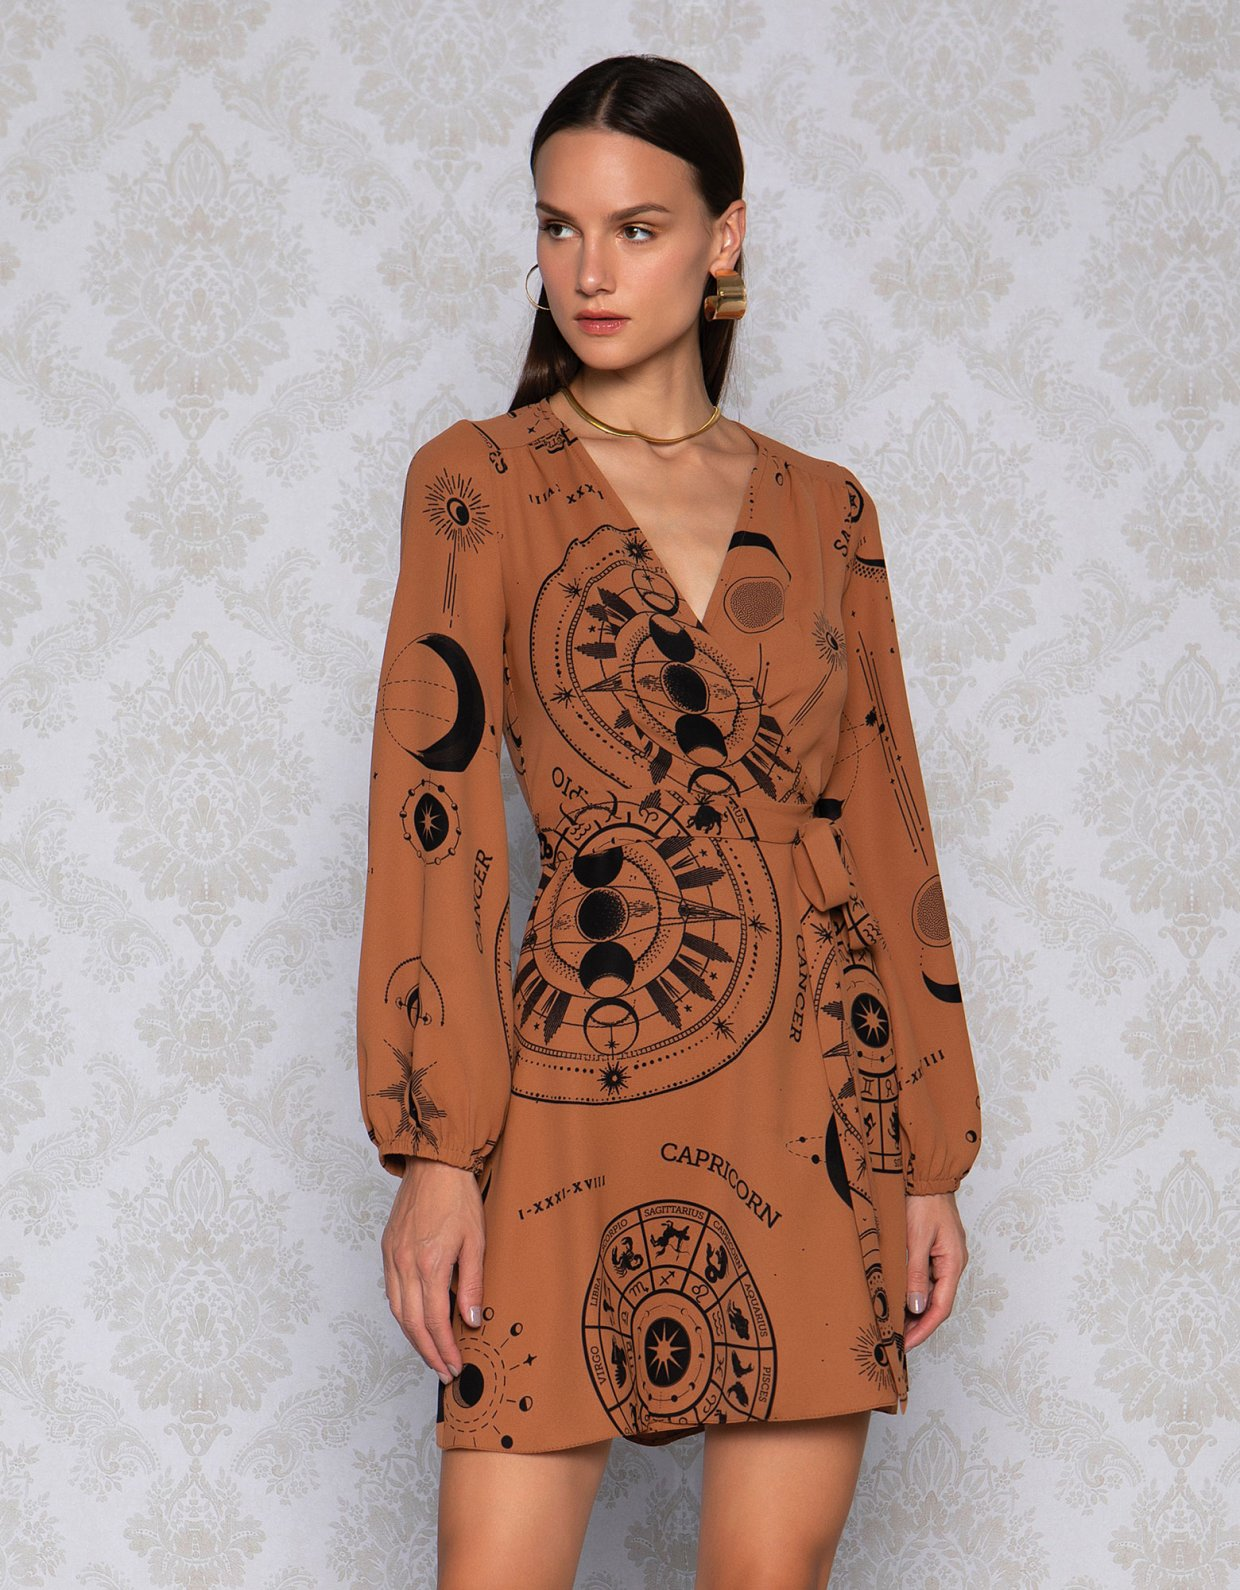 Peace & Chaos La luna wrap dress